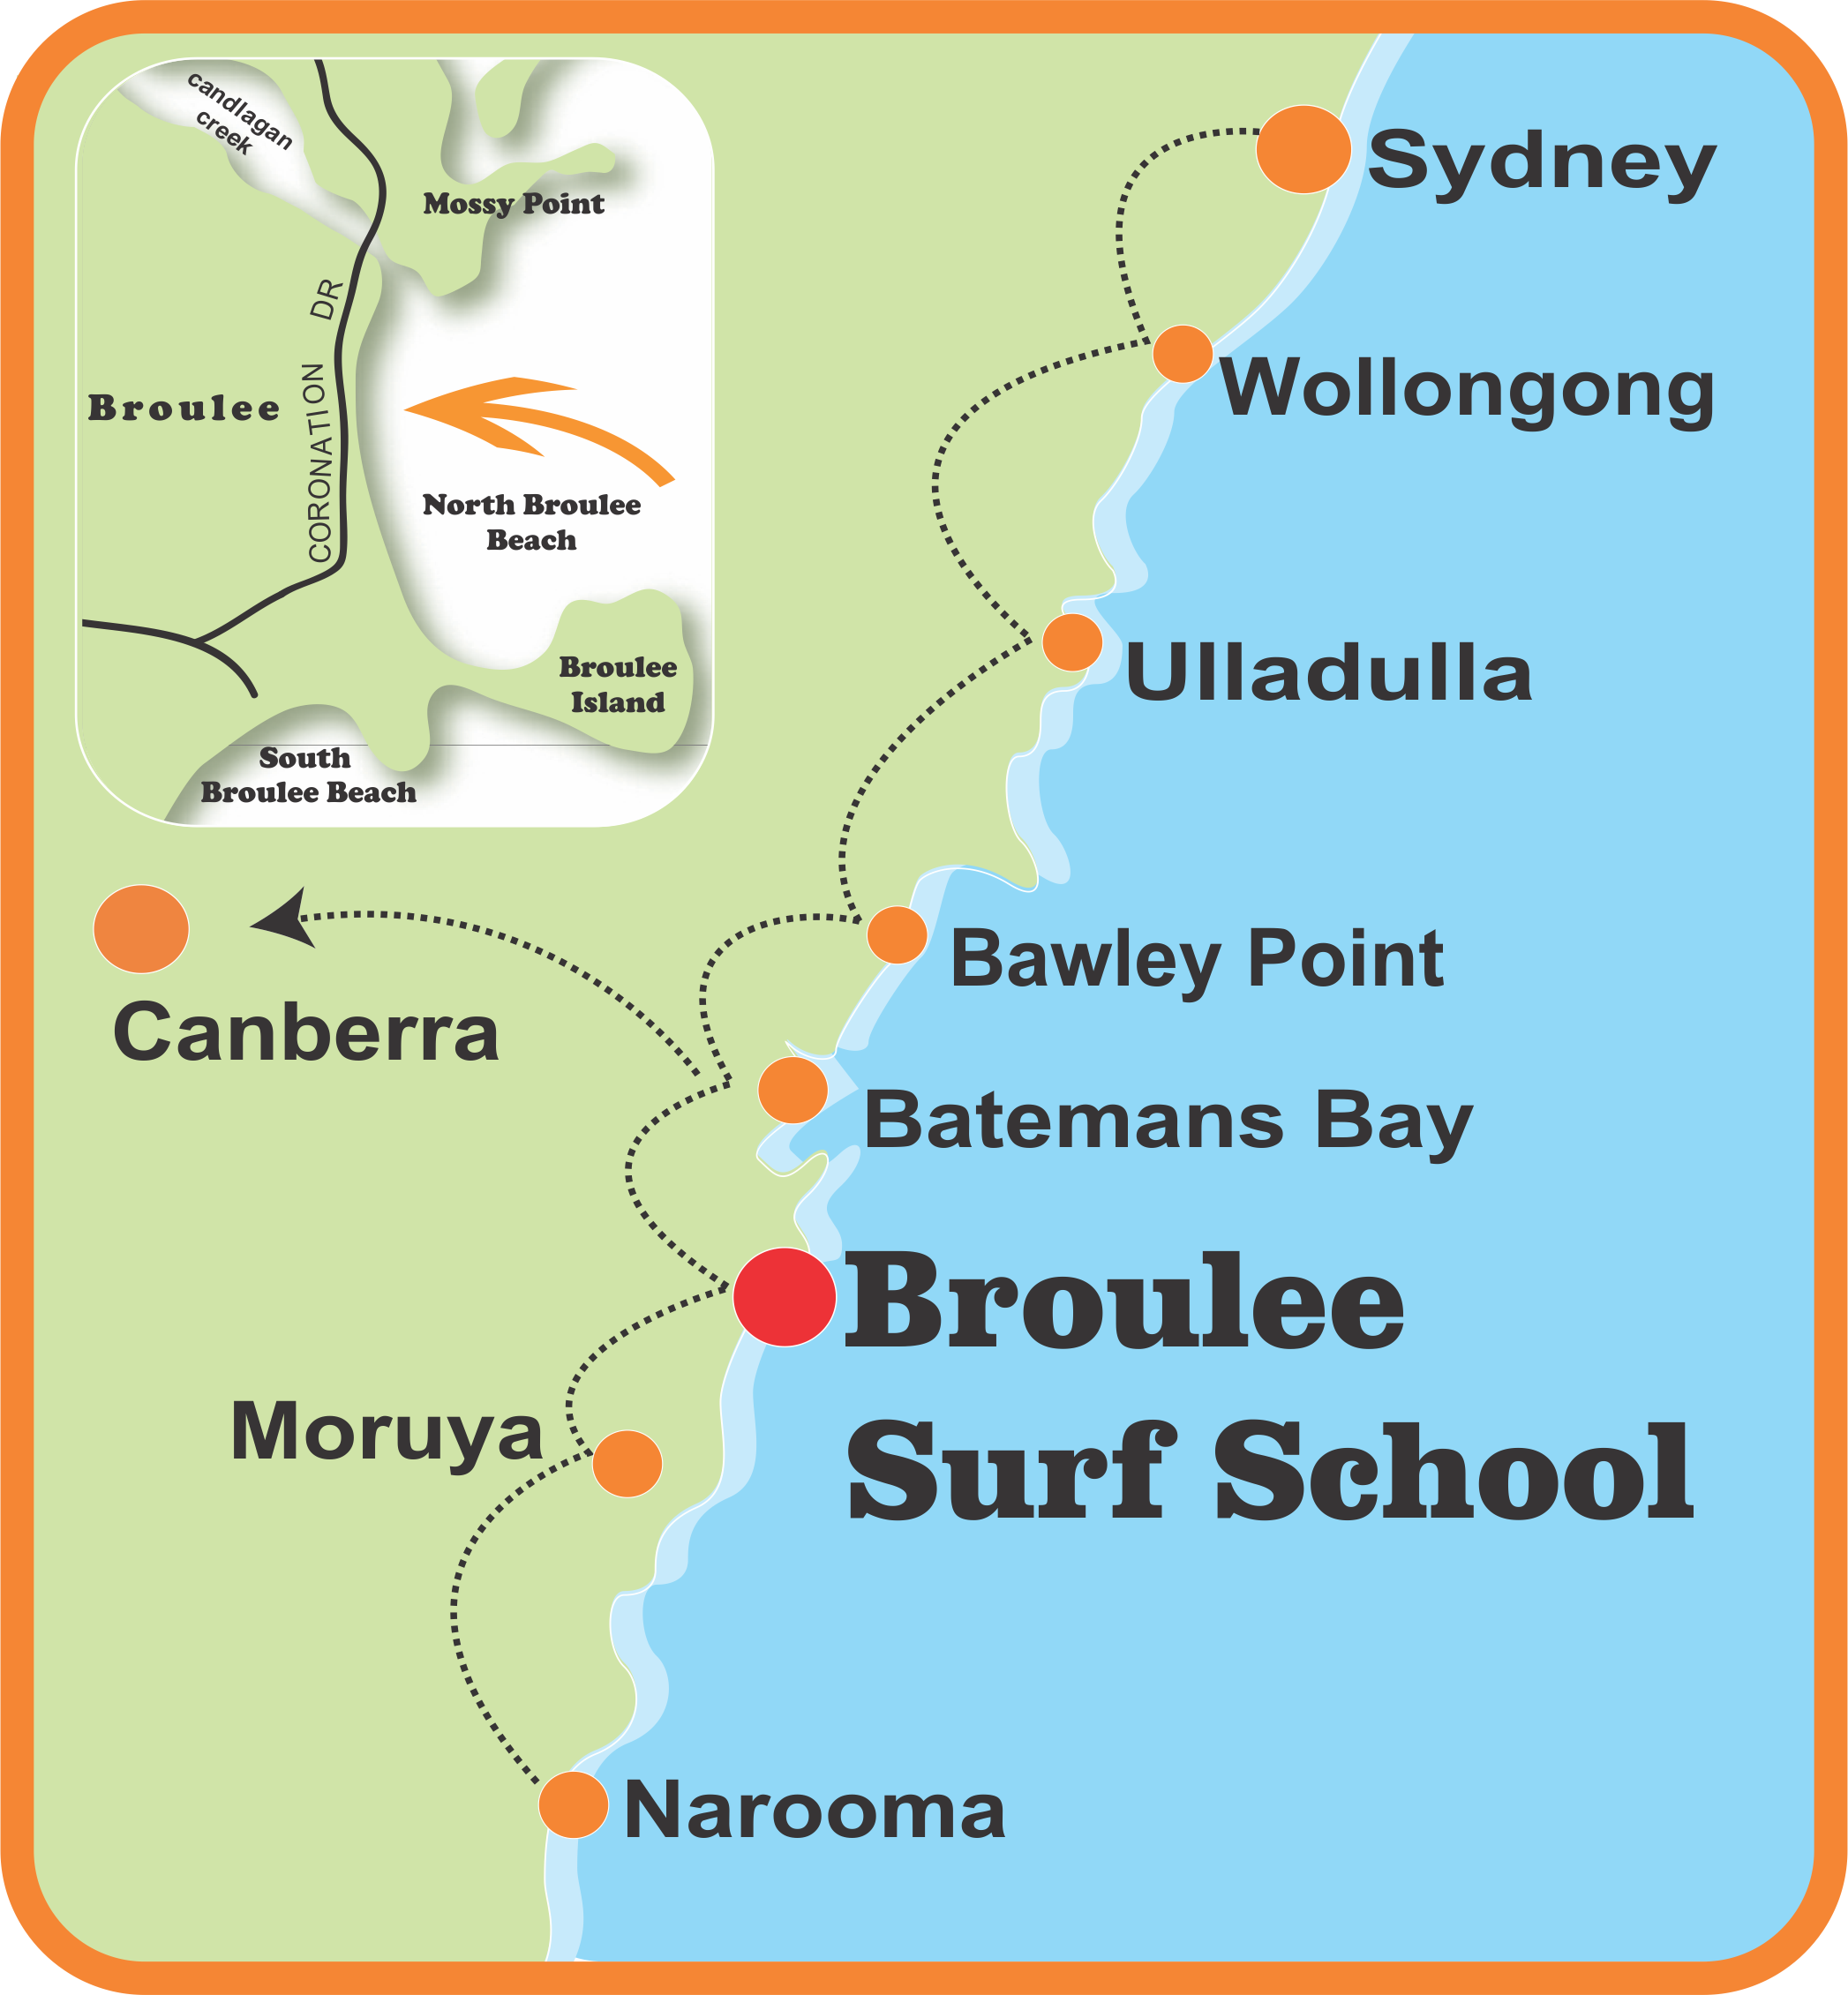 Broulee Surf School Batemans Bay